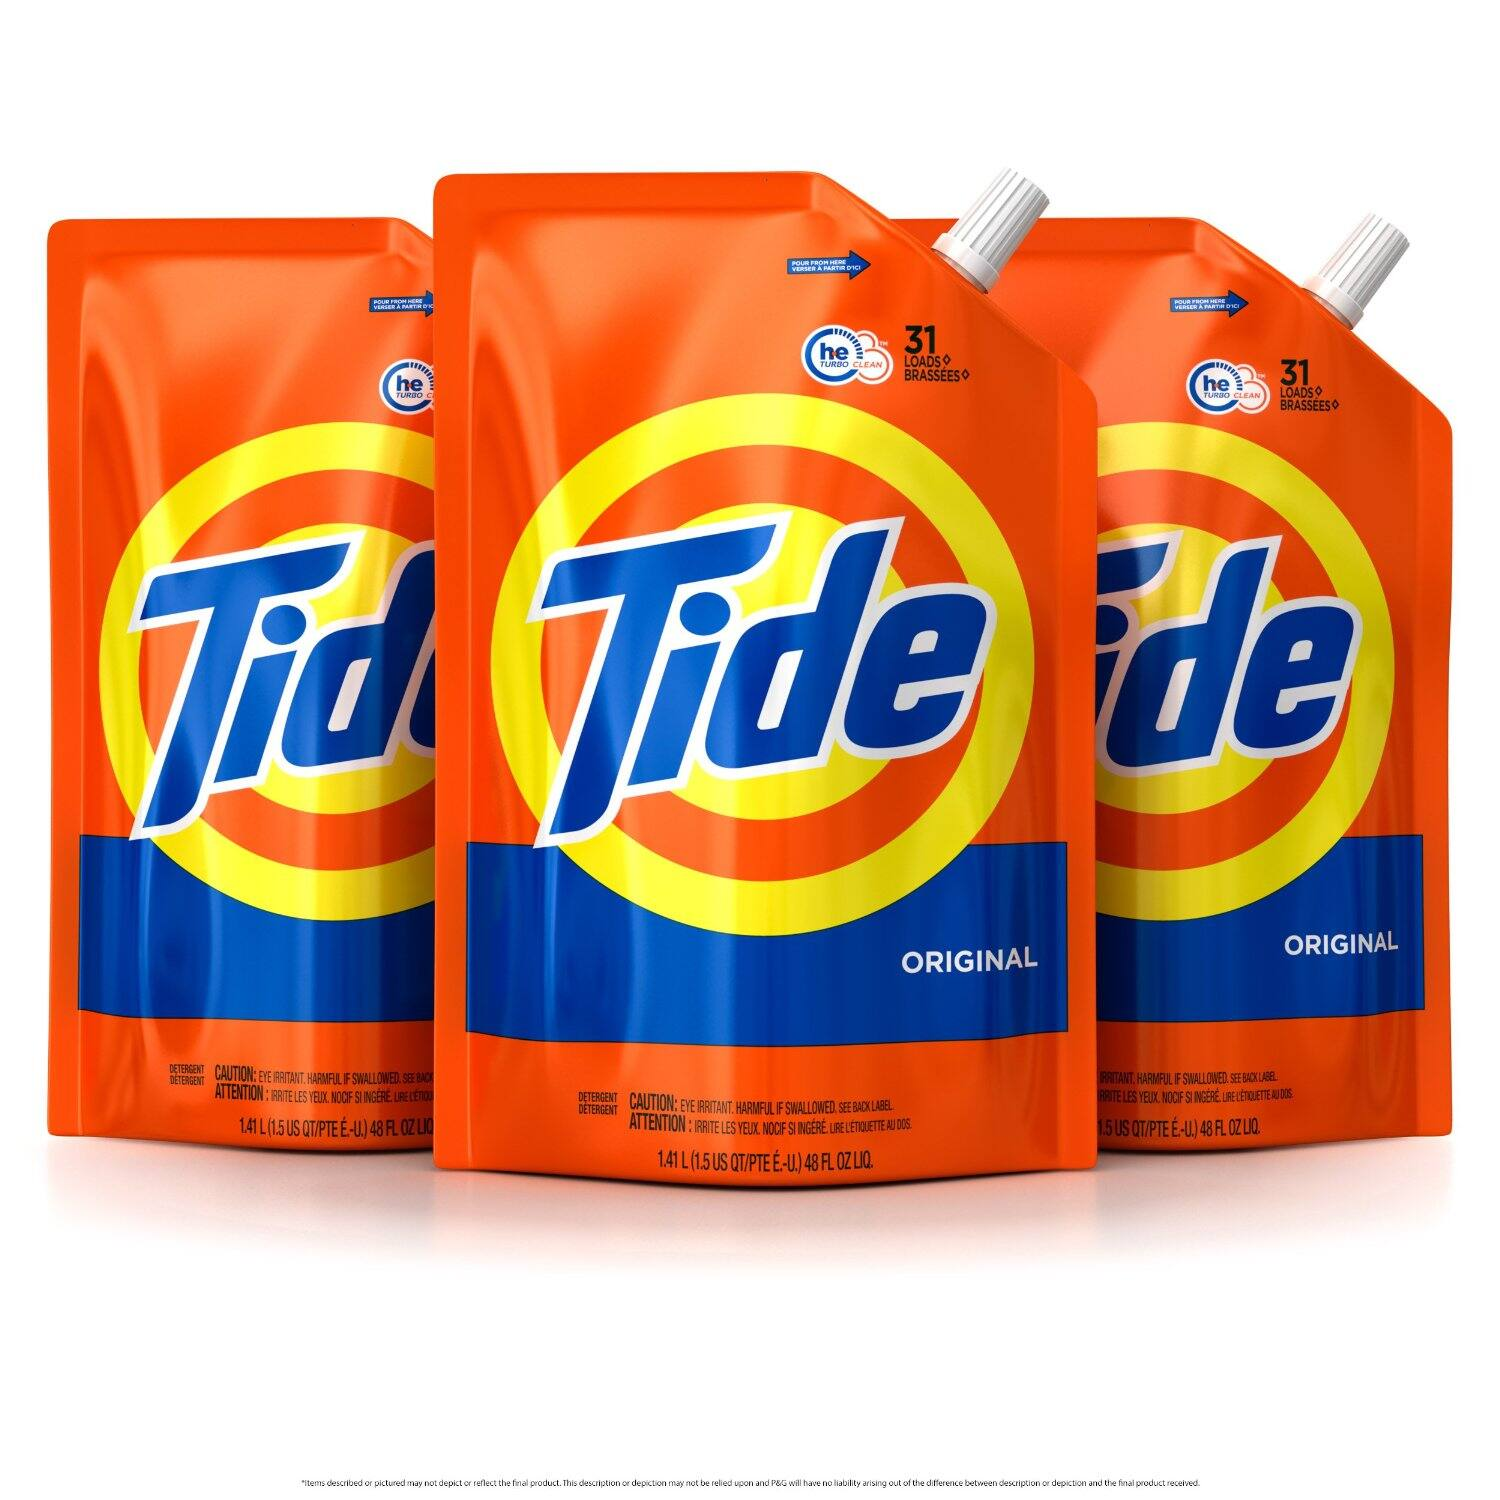 Prime Members: 3-Pack 48oz Tide HE Liquid Laundry Detergent Pouches (Original or Free & Gentle) $14.09 or Less + Free Shipping Amazon.com